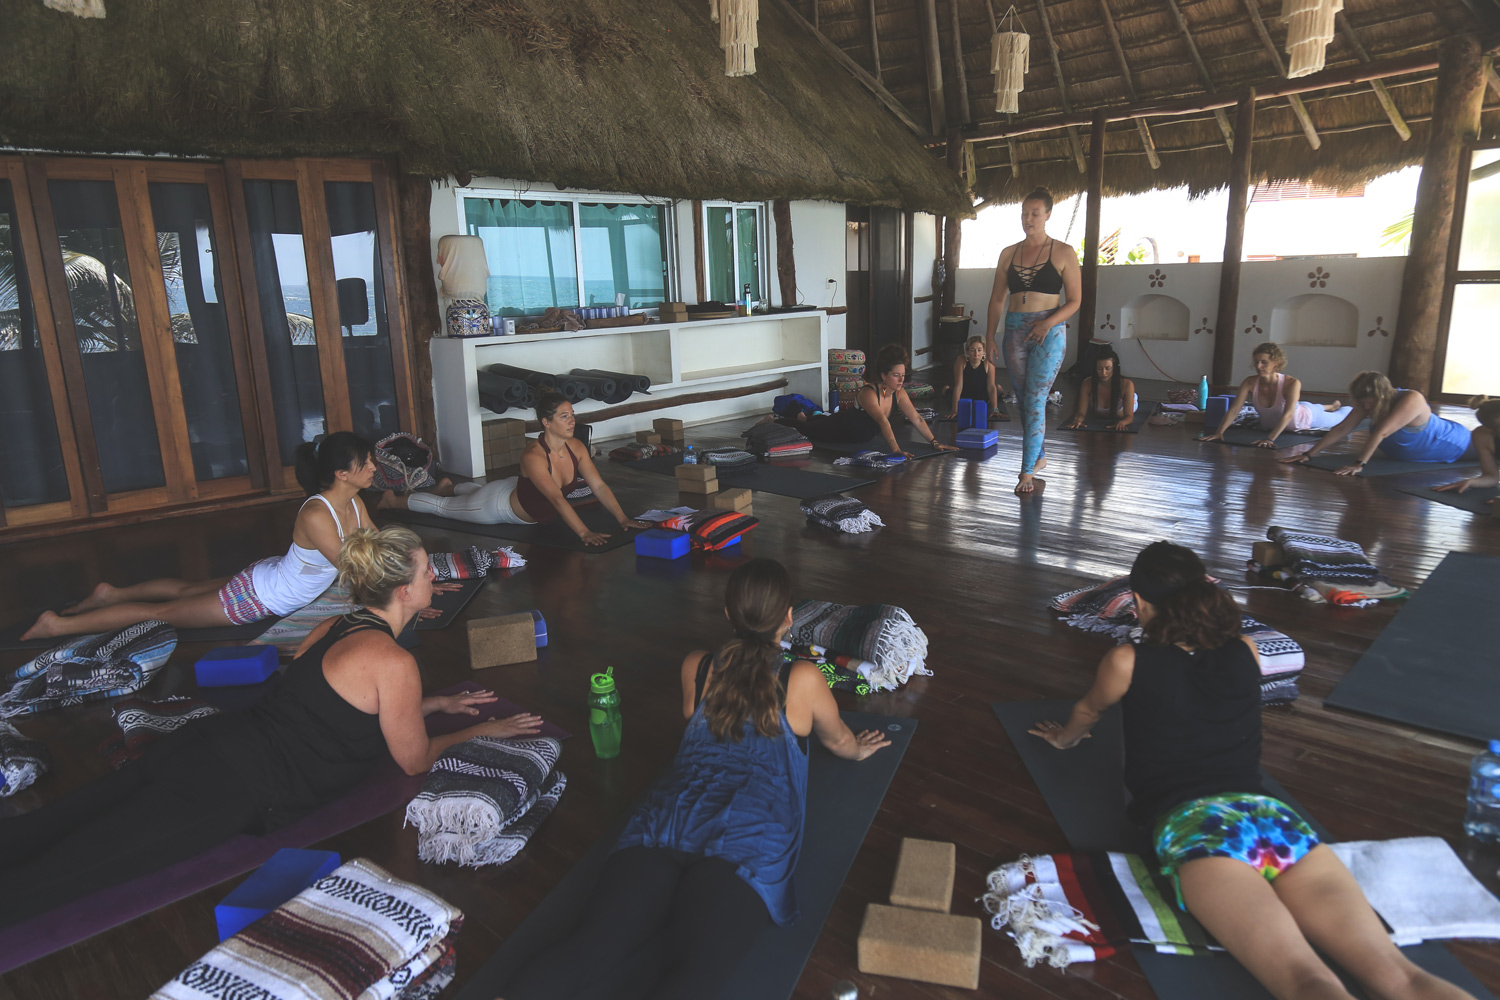 5 Elements Yin Yoga Teacher Training in Tulum | Photos taken by:  Stephanie Mignacca